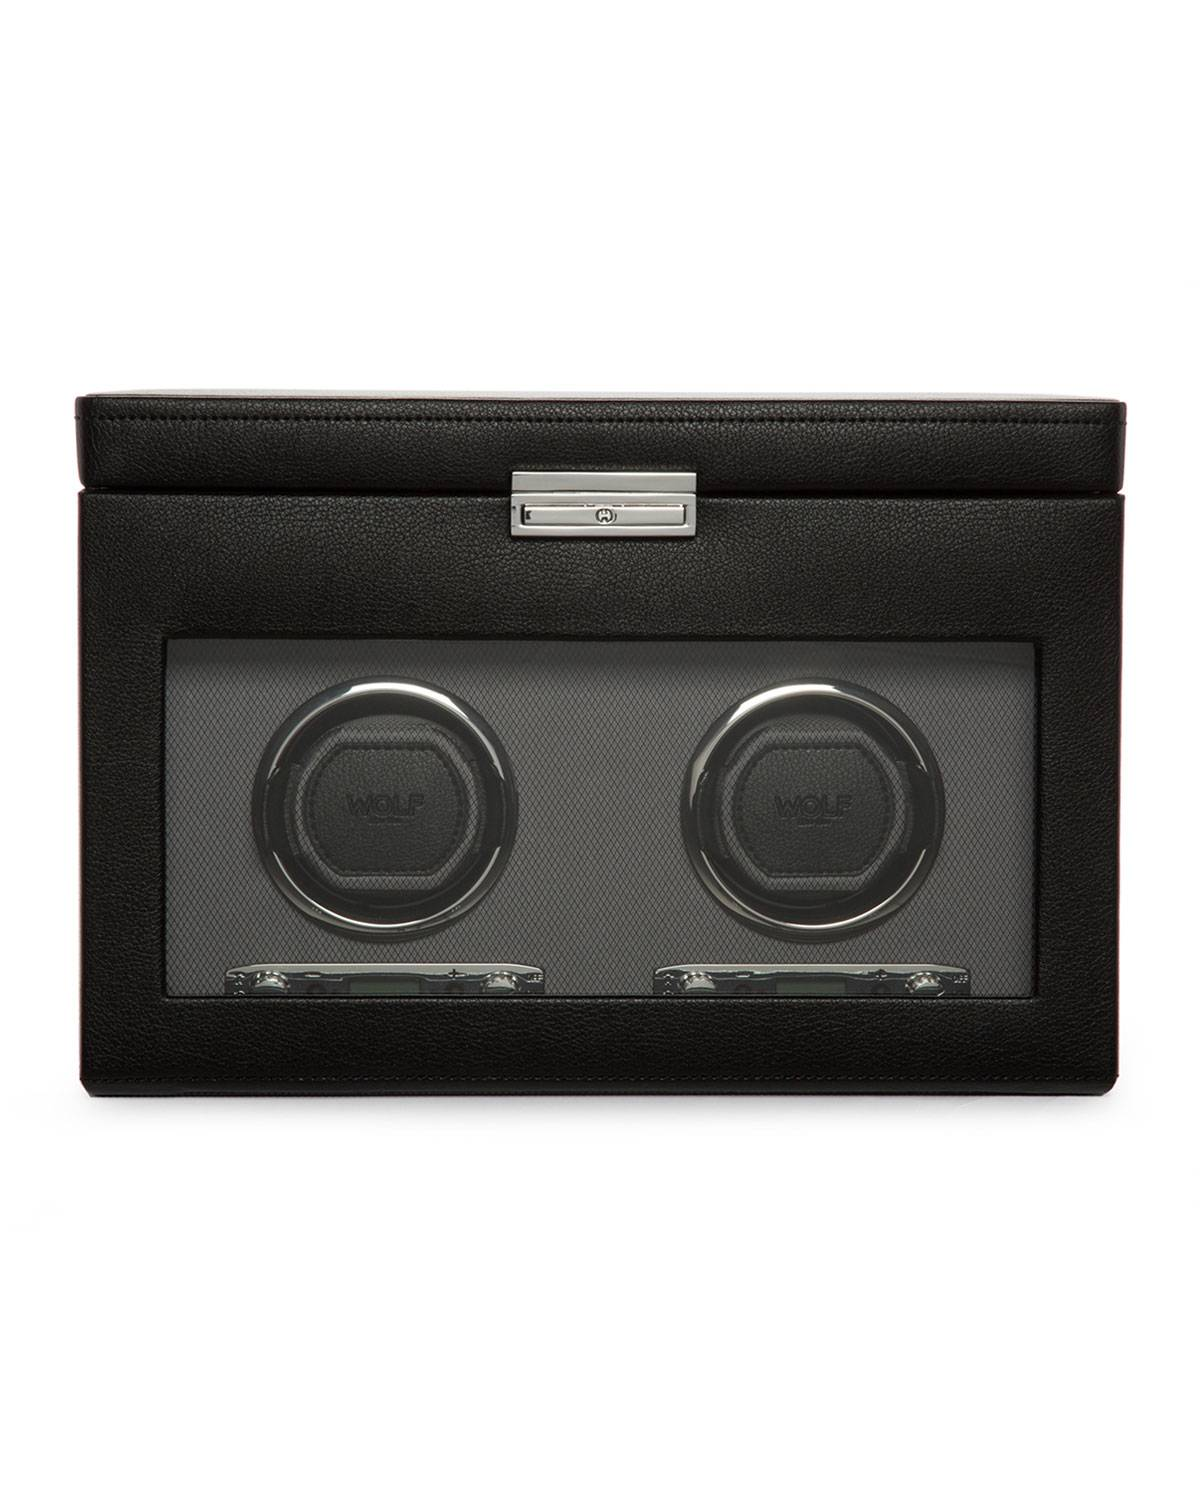 WOLF Viceroy Double Watch Winder